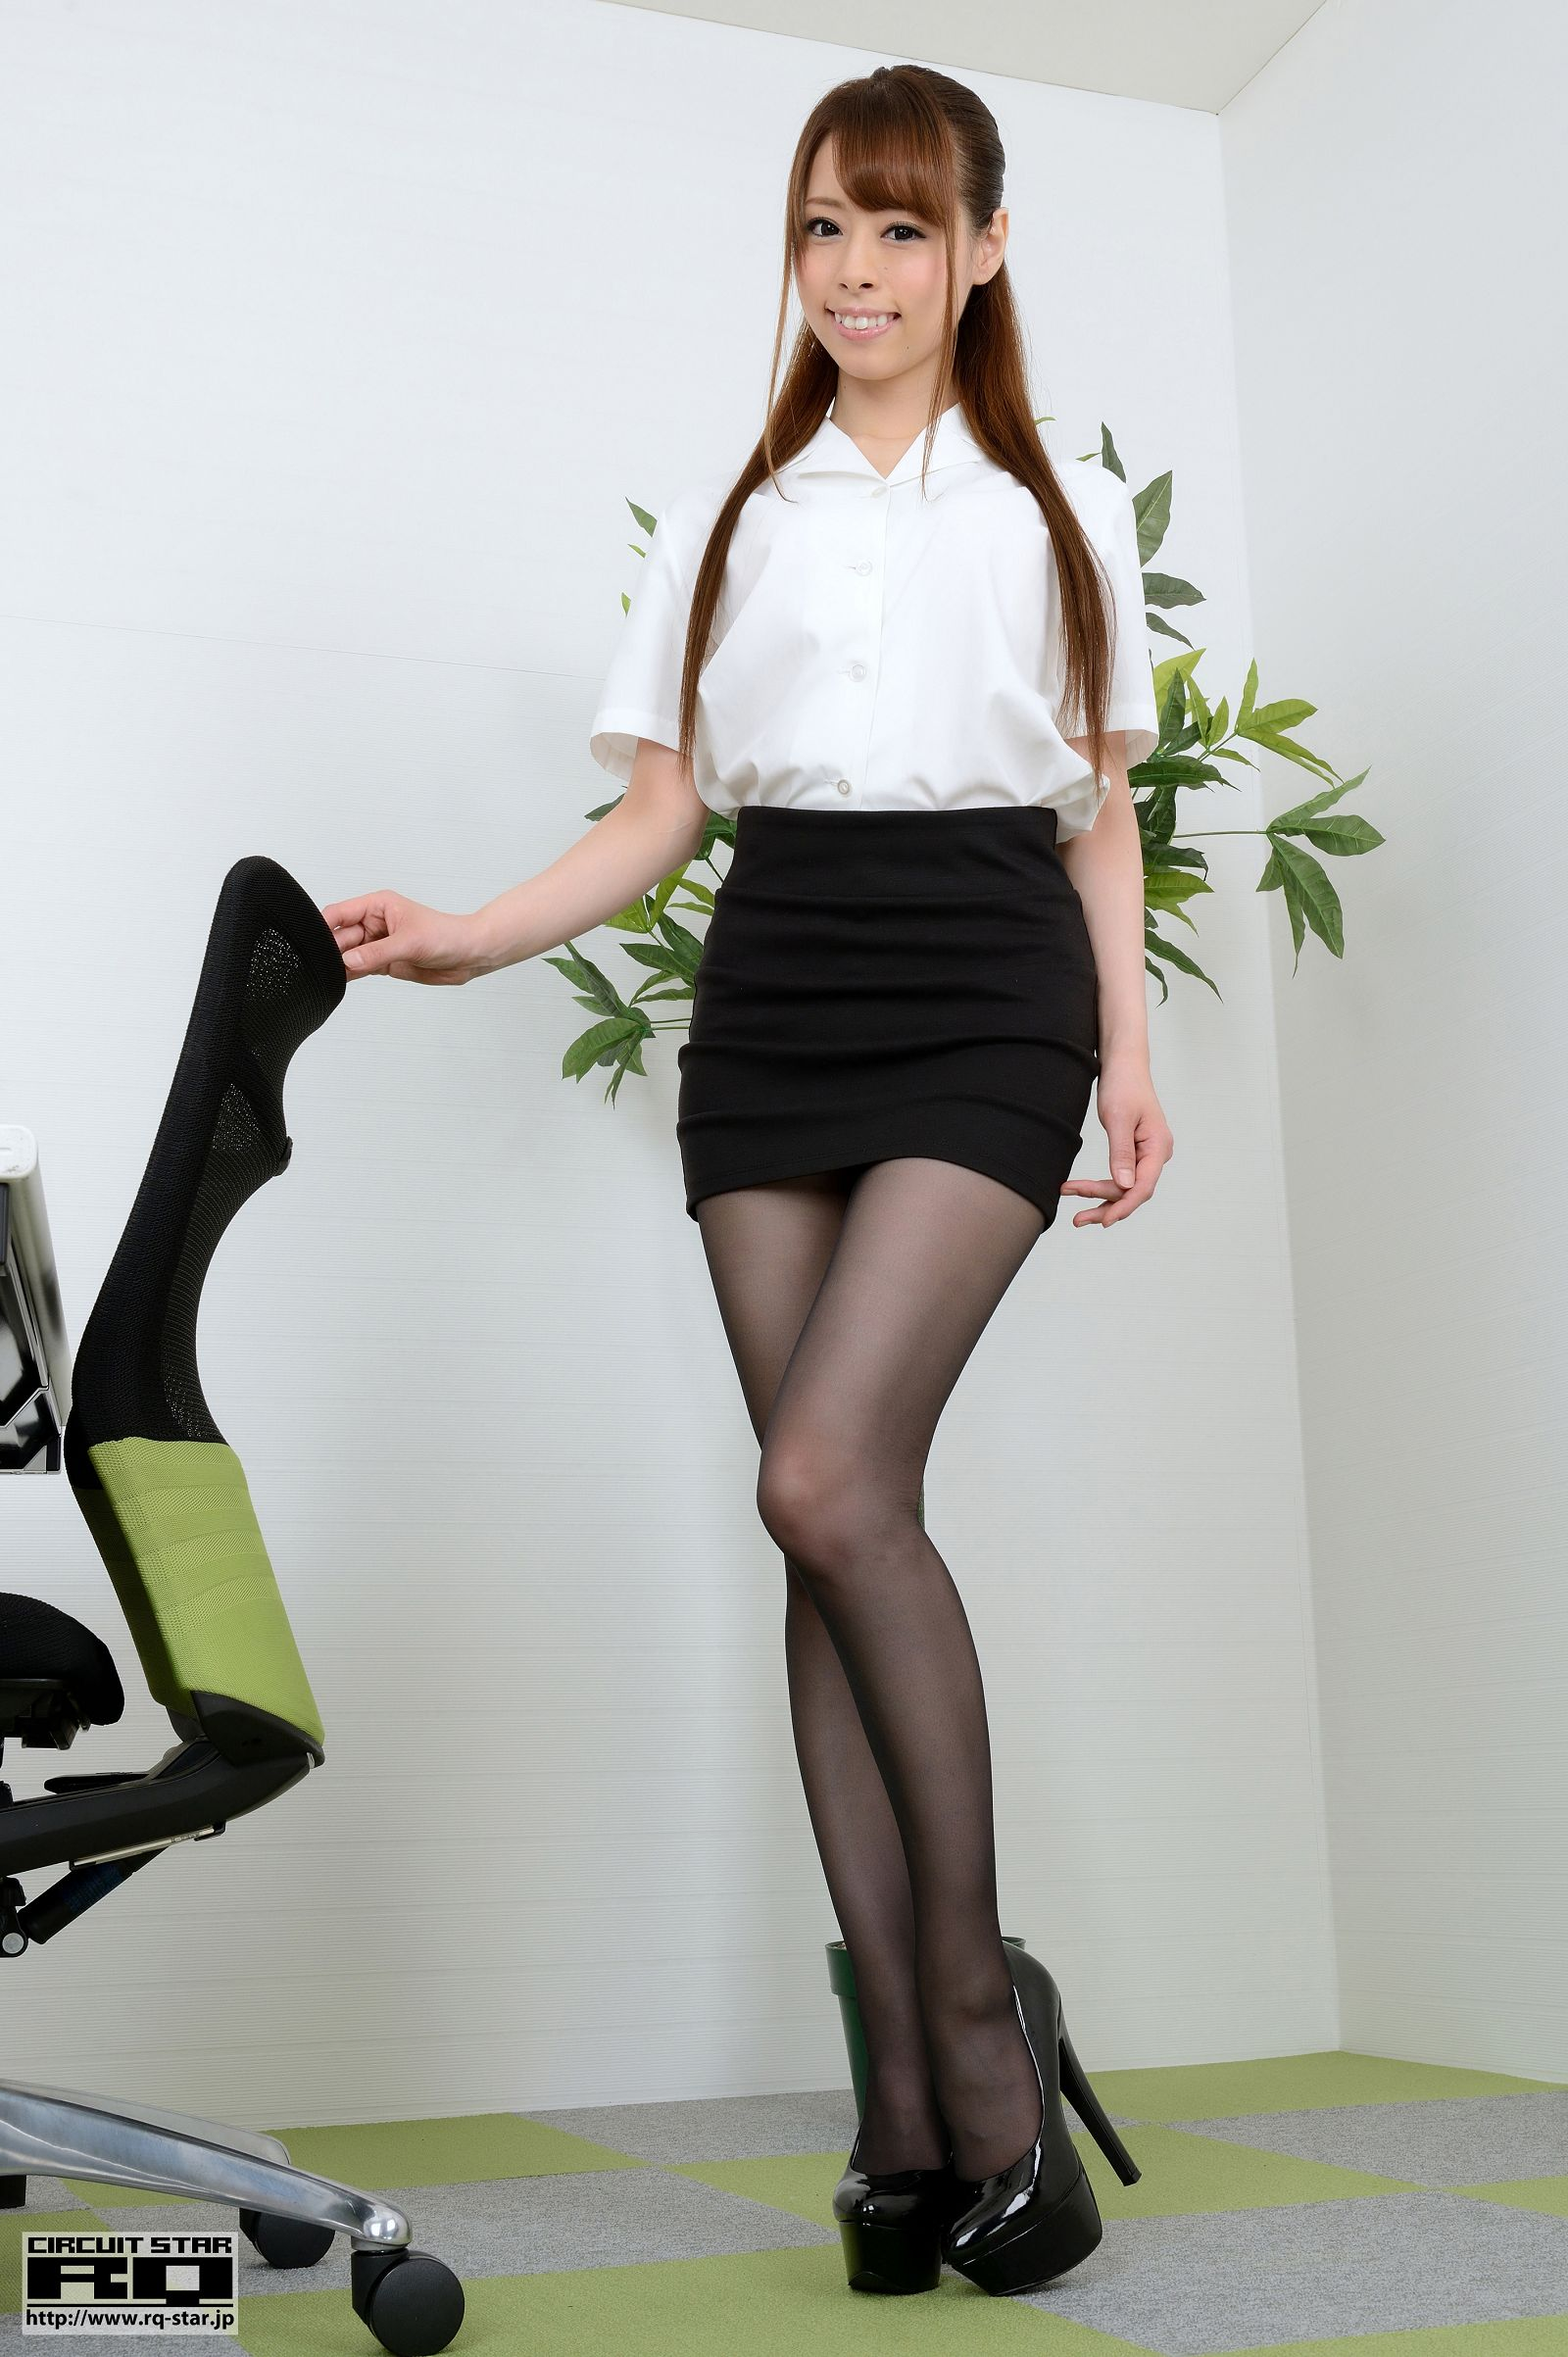 [RQ STAR美女] NO.00849 MIU Office Lady[100P] RQ STAR 第1张